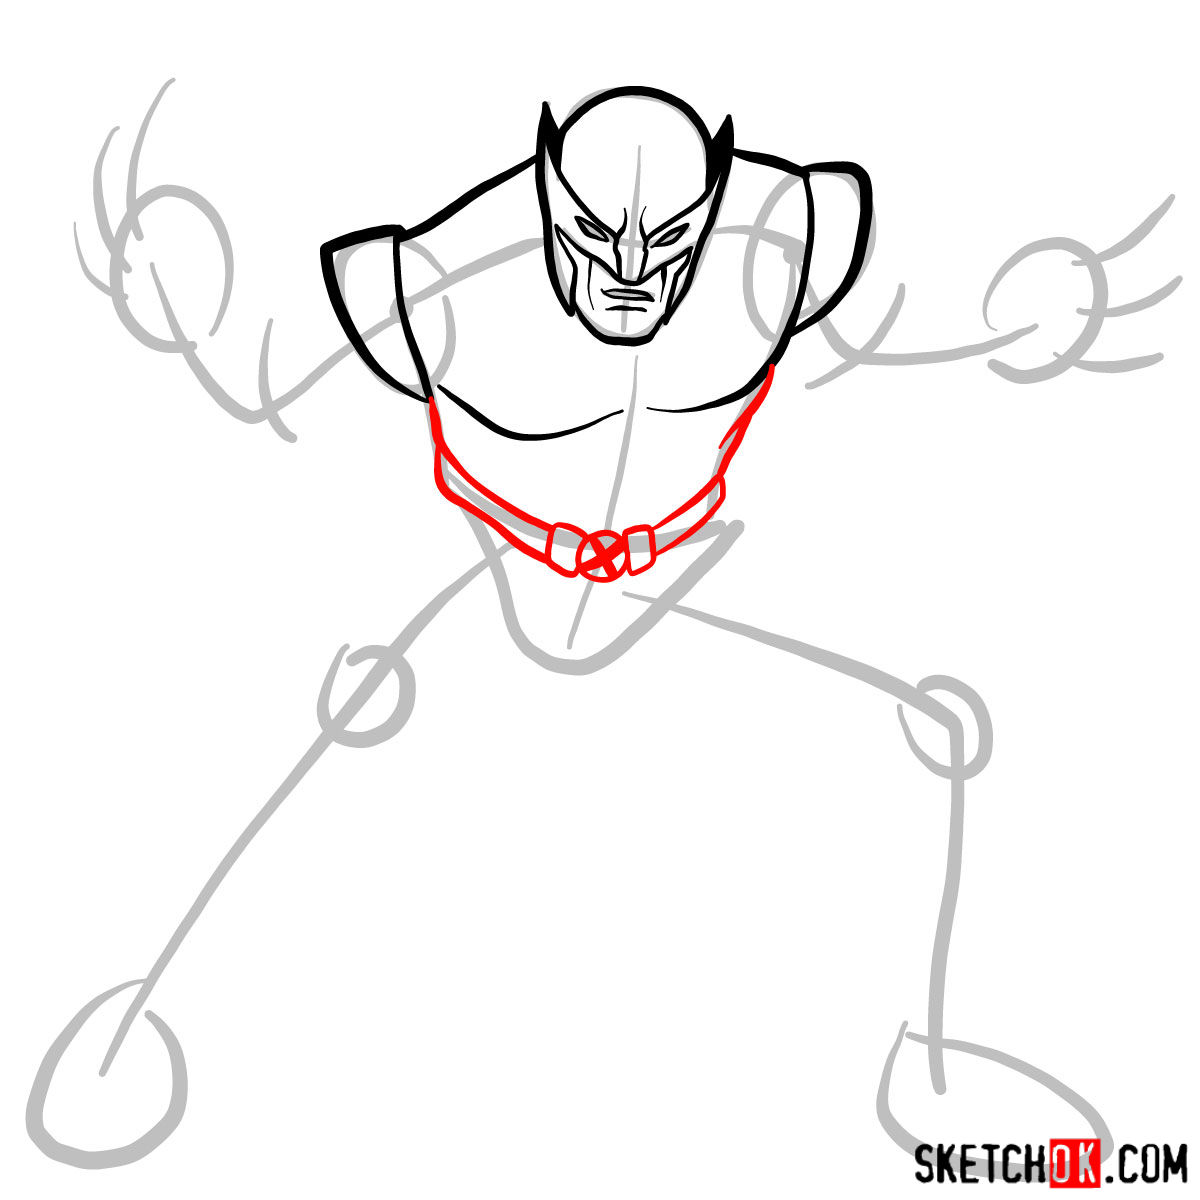 How to draw Wolverine in his superhero suit - 